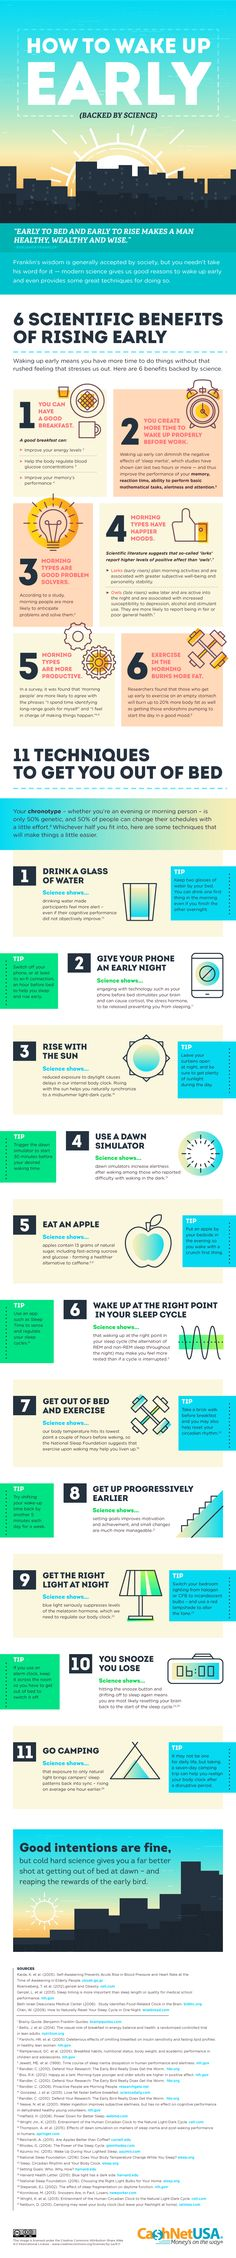 How to Wake Up Early #infographic #HowTo #Health #Stress